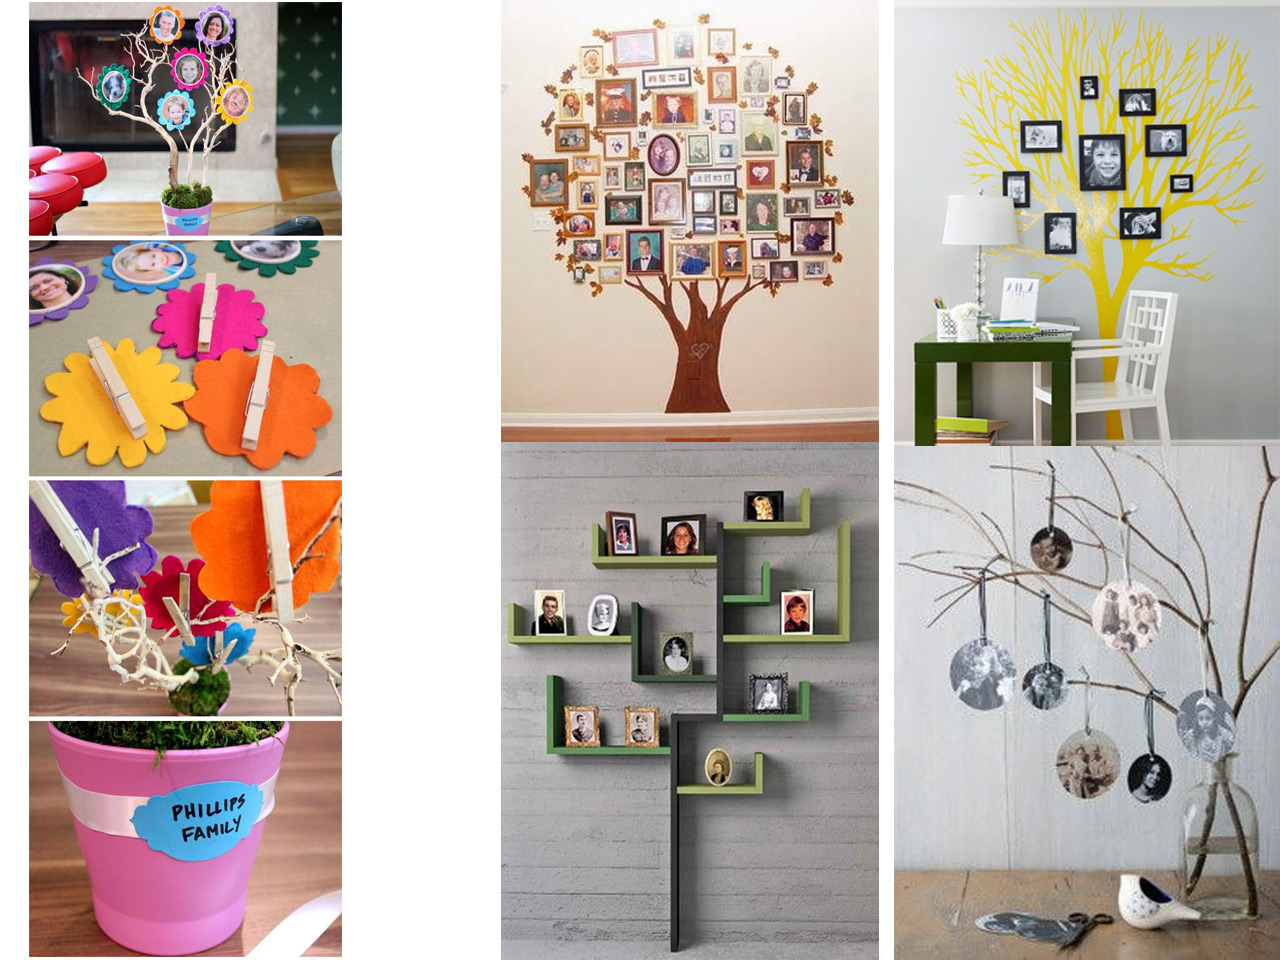 60 brillantes ideas para decorar con fotos familiares - Decoraciones de fotos ...